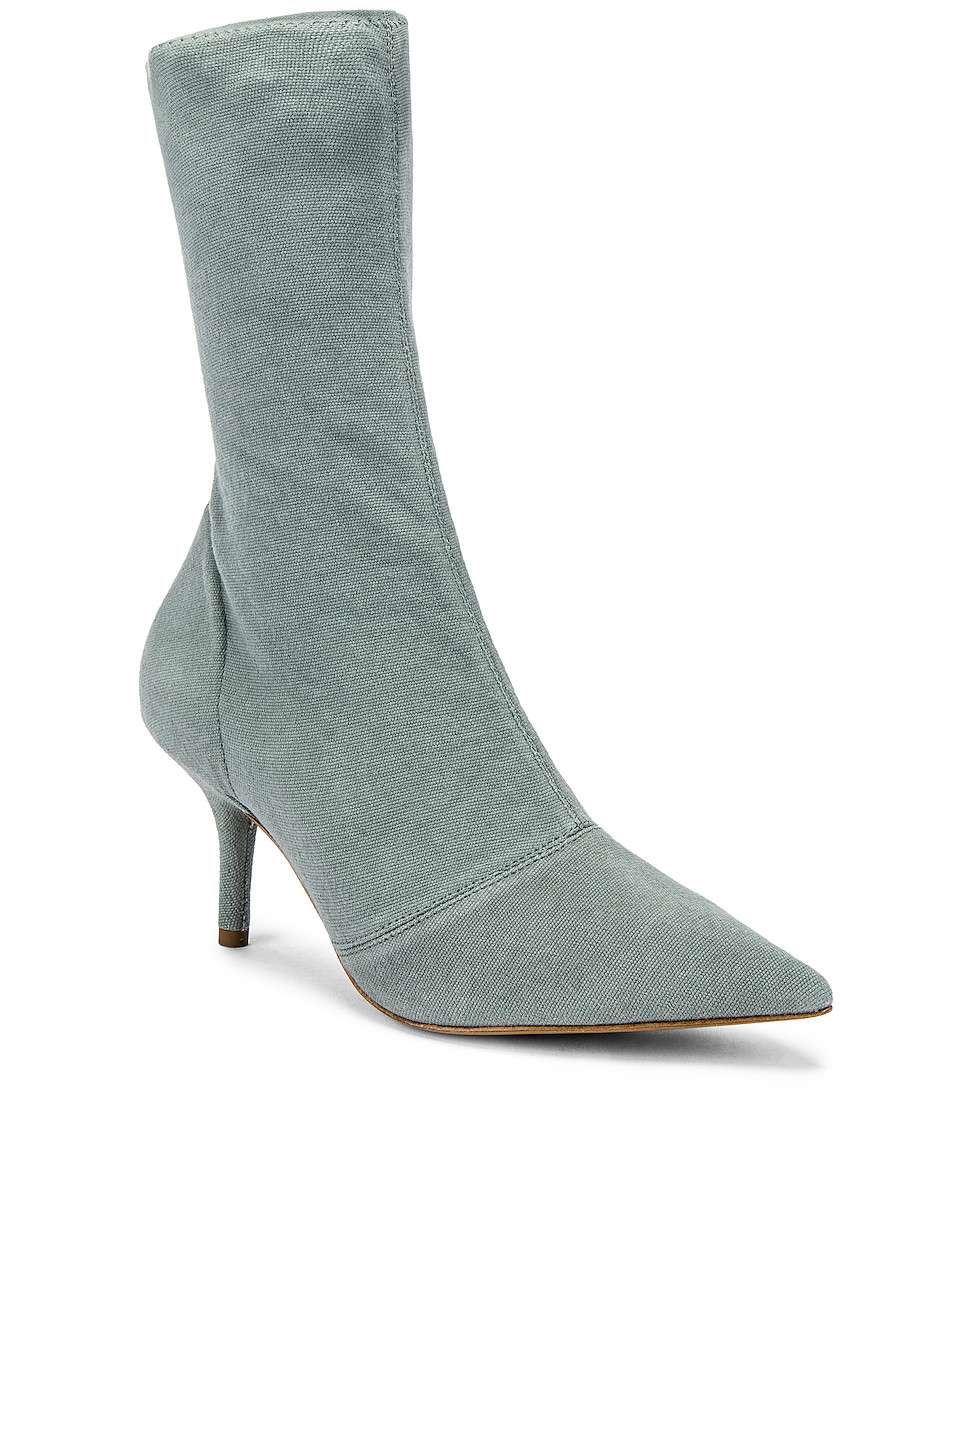 6006079d8c9a5 Buy Original YEEZY SEASON 8 Stretch Ankle Boot at Indonesia ...